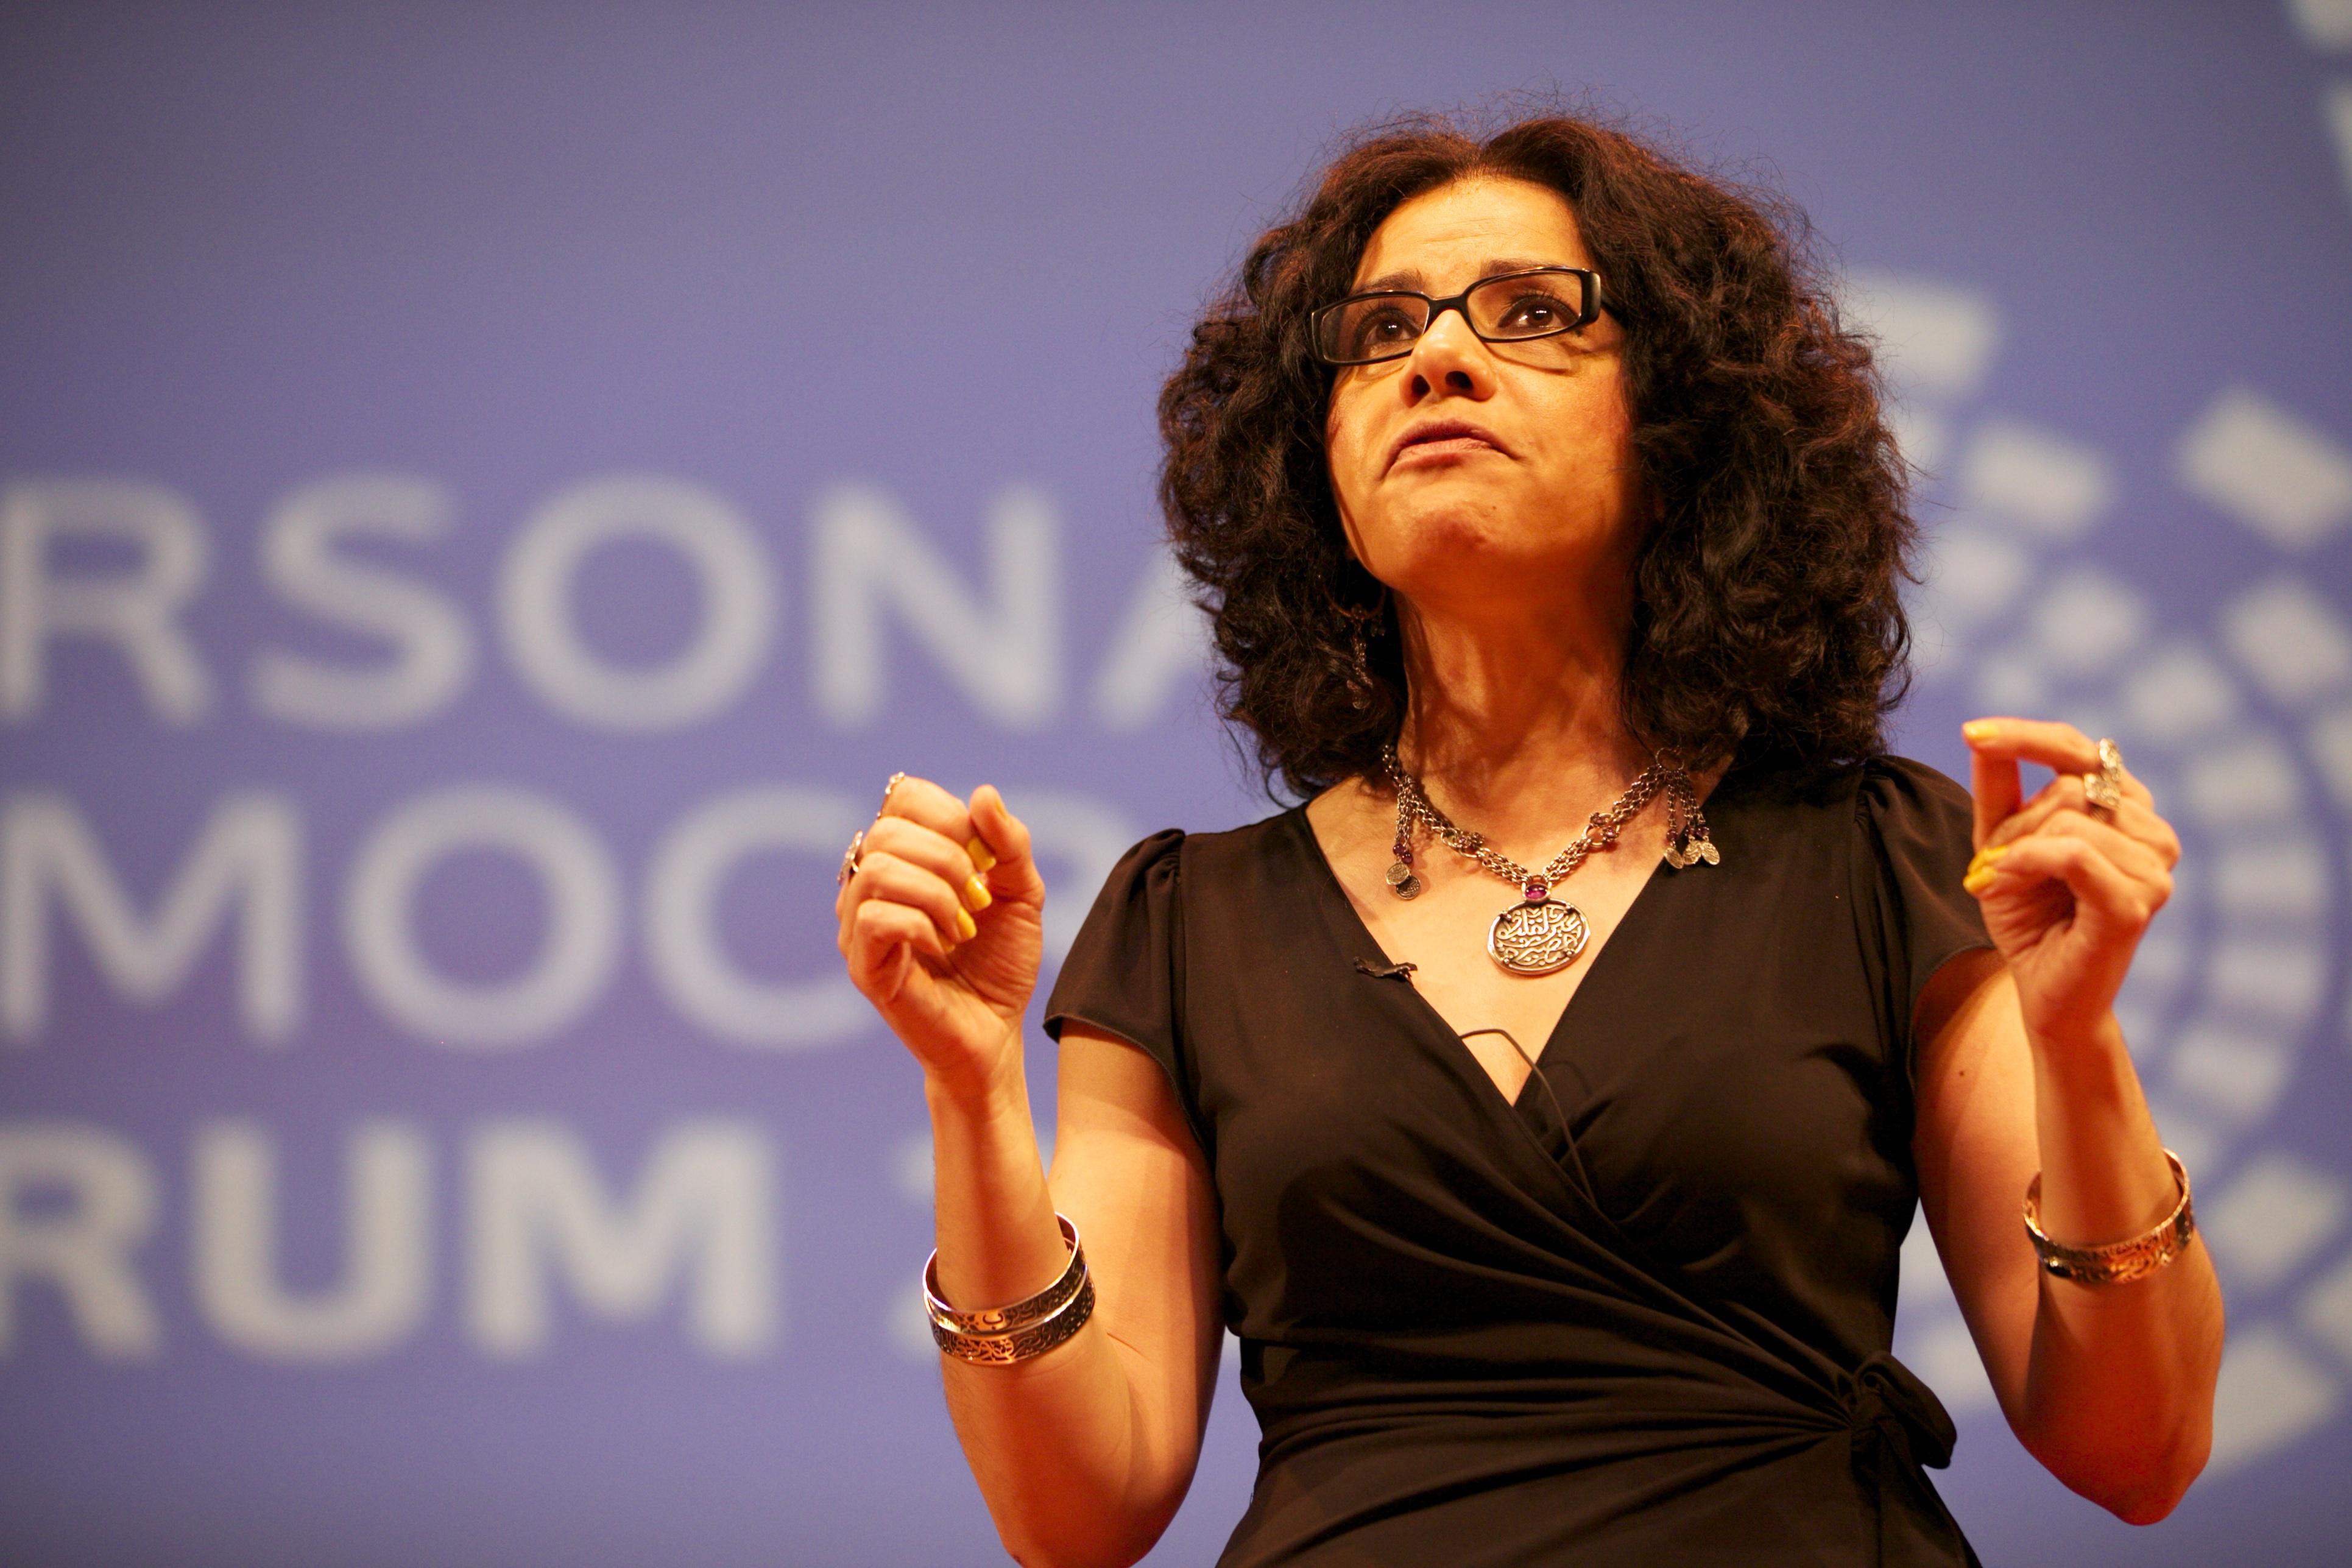 Eltahawy speaking at the 2011 [[Personal Democracy Forum]]